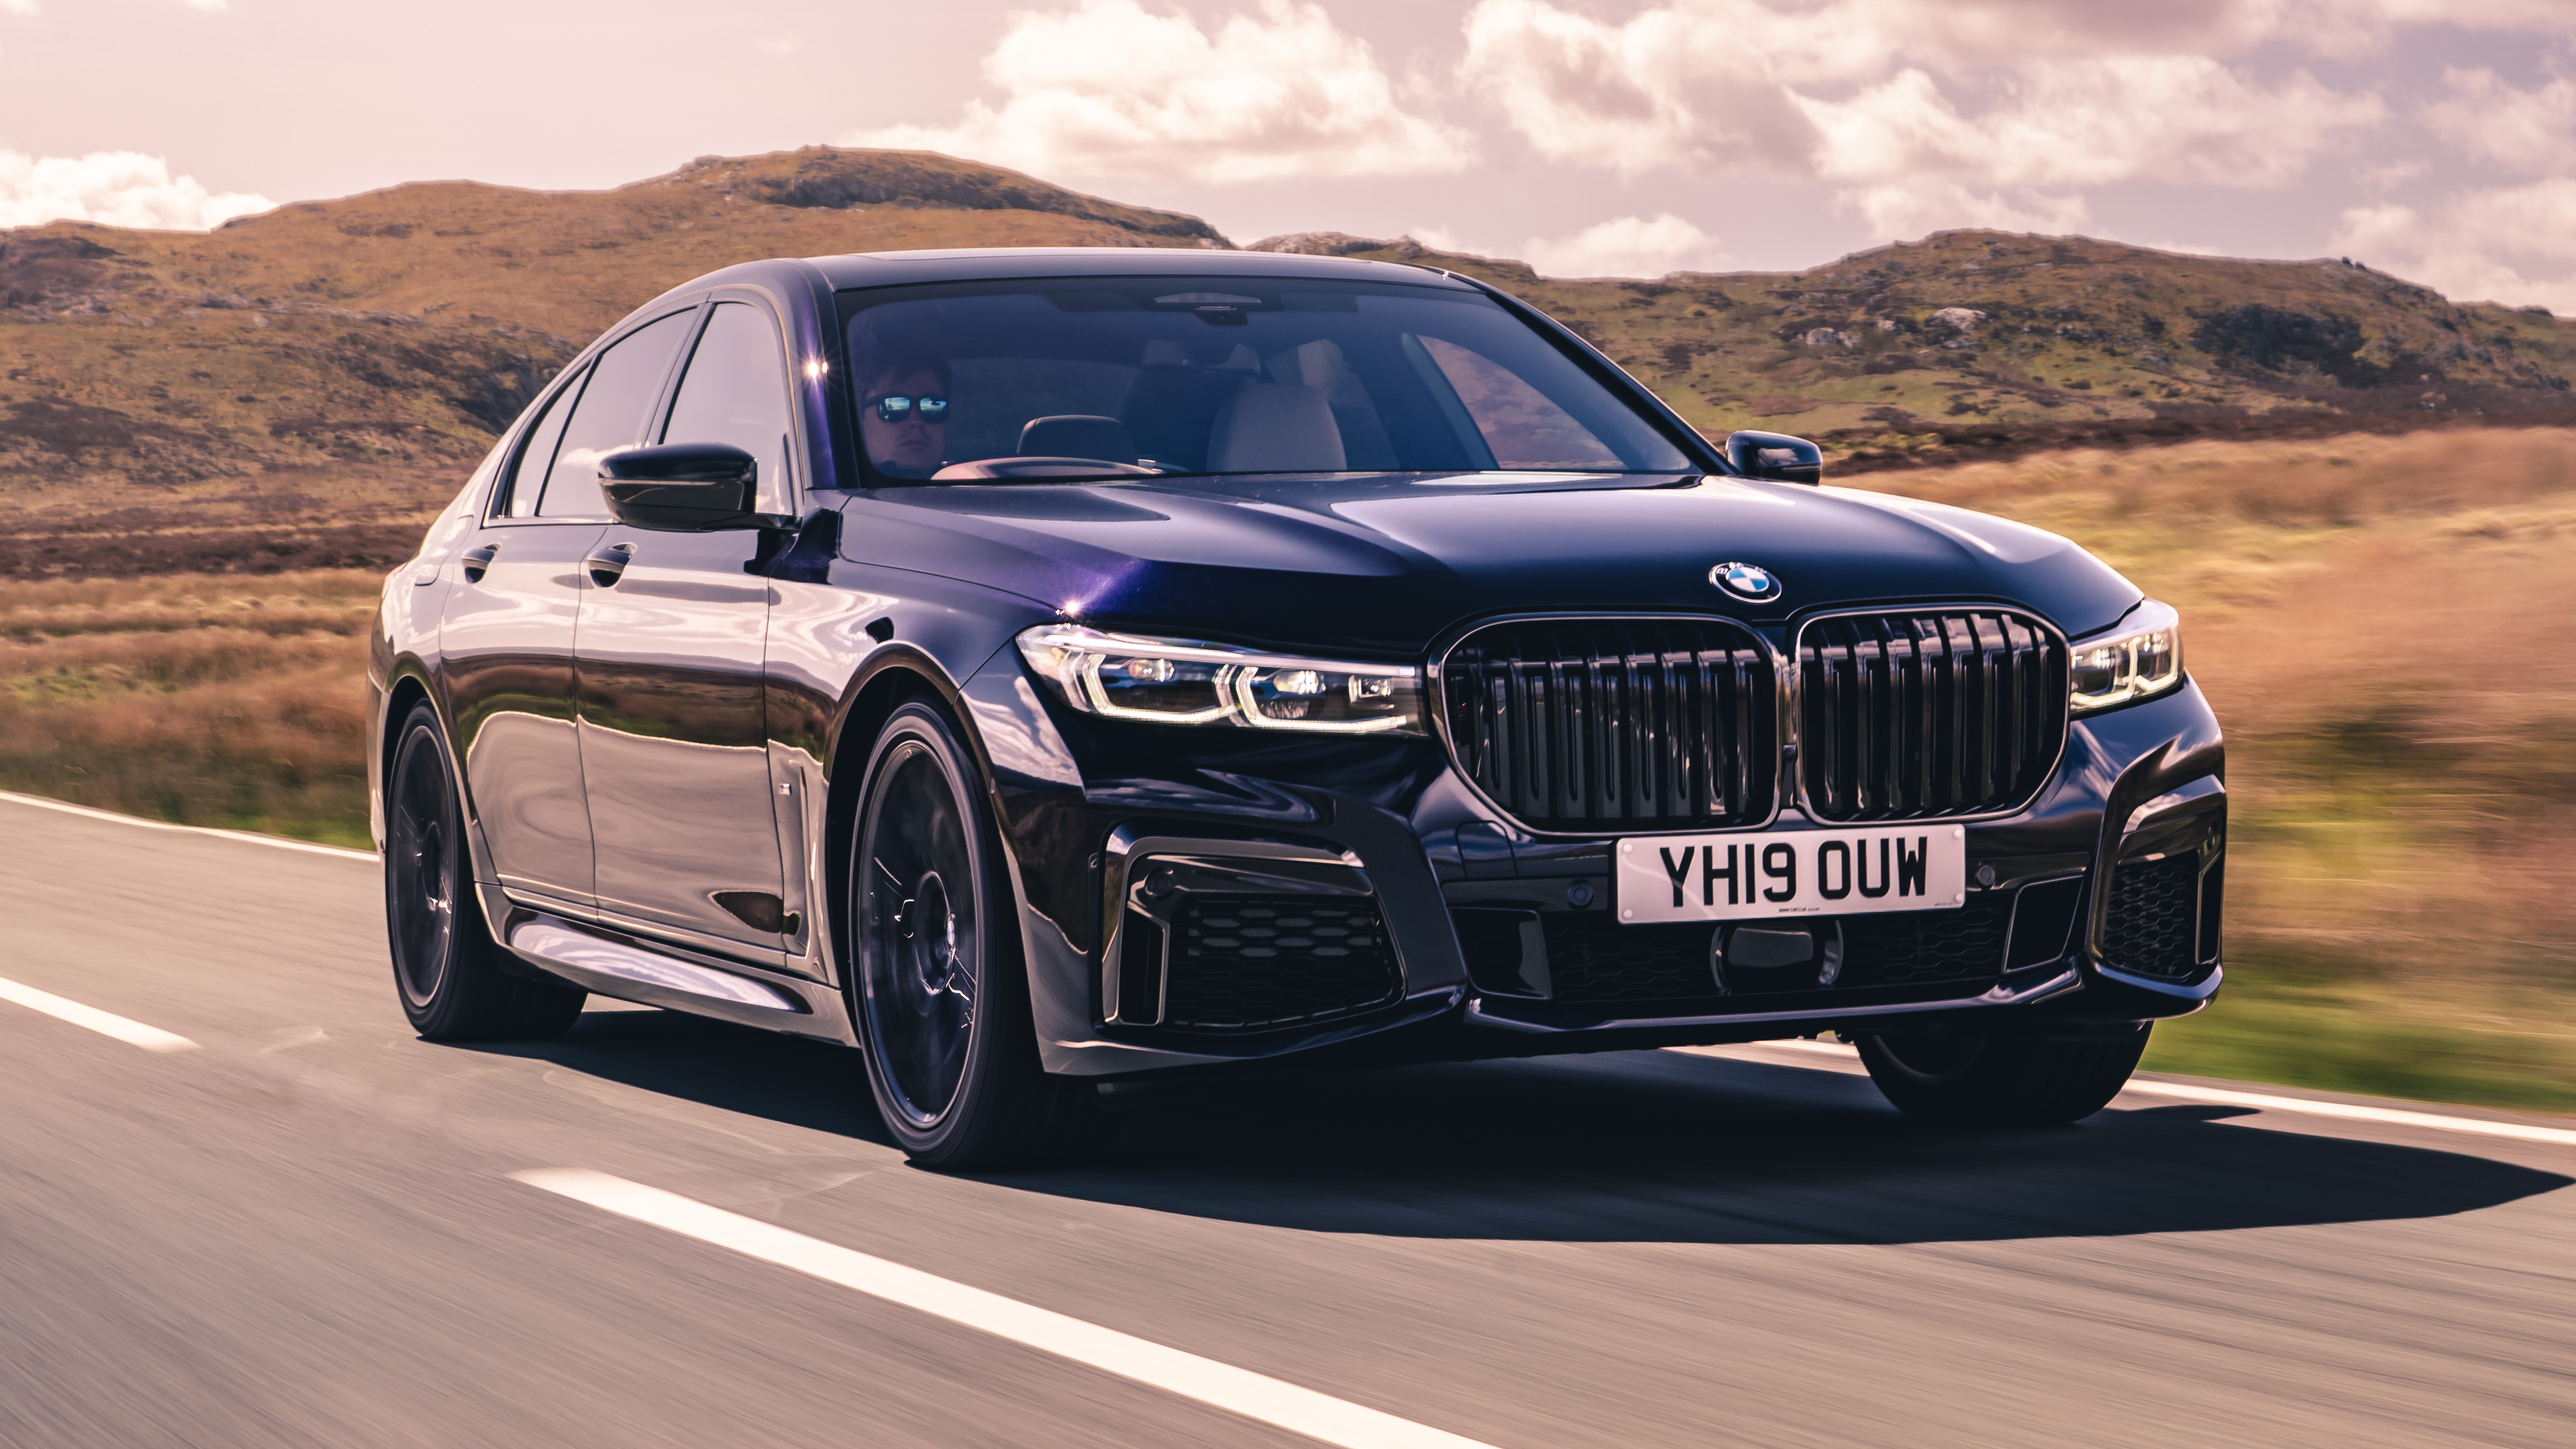 BMW 750i review: V8 turbo limo tested in the UK | Top Gear